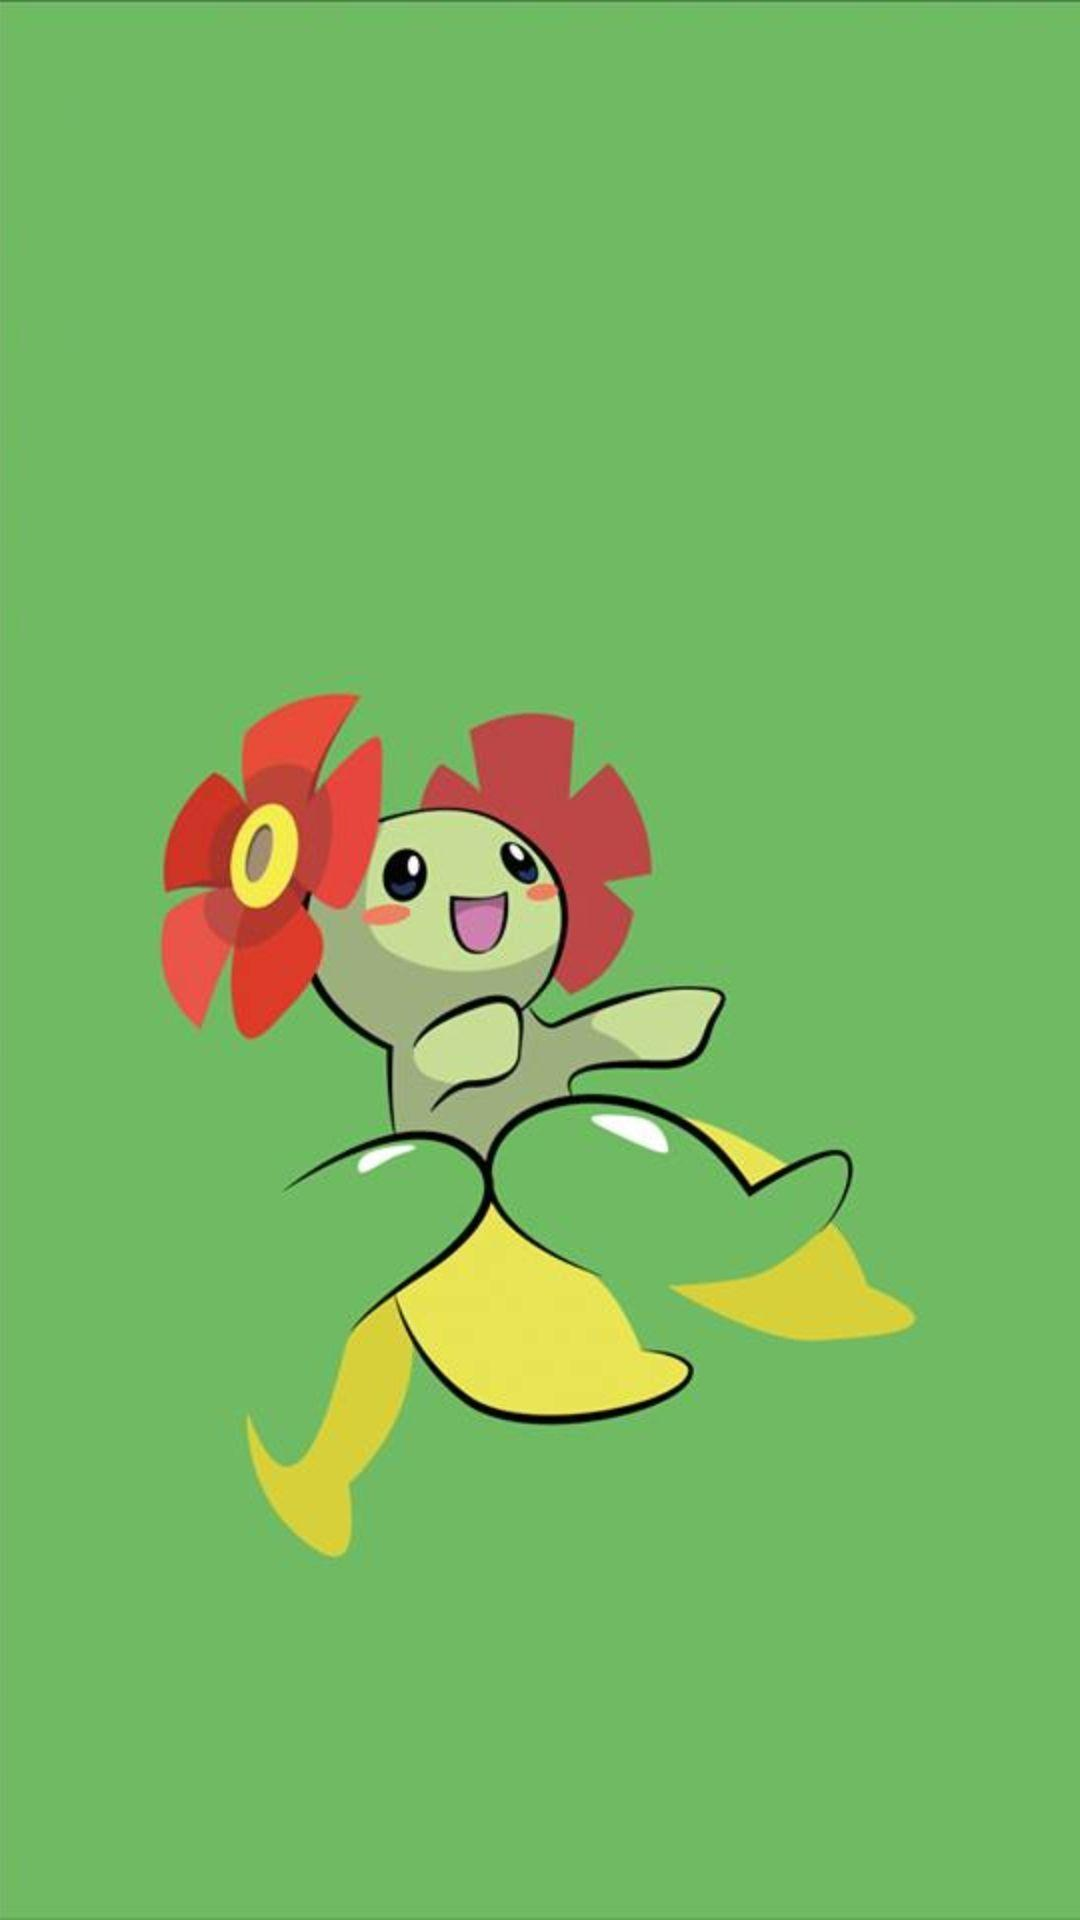 Bellossom - Tap to see more Pokemon Go wallpaper! | @mobile9 ...